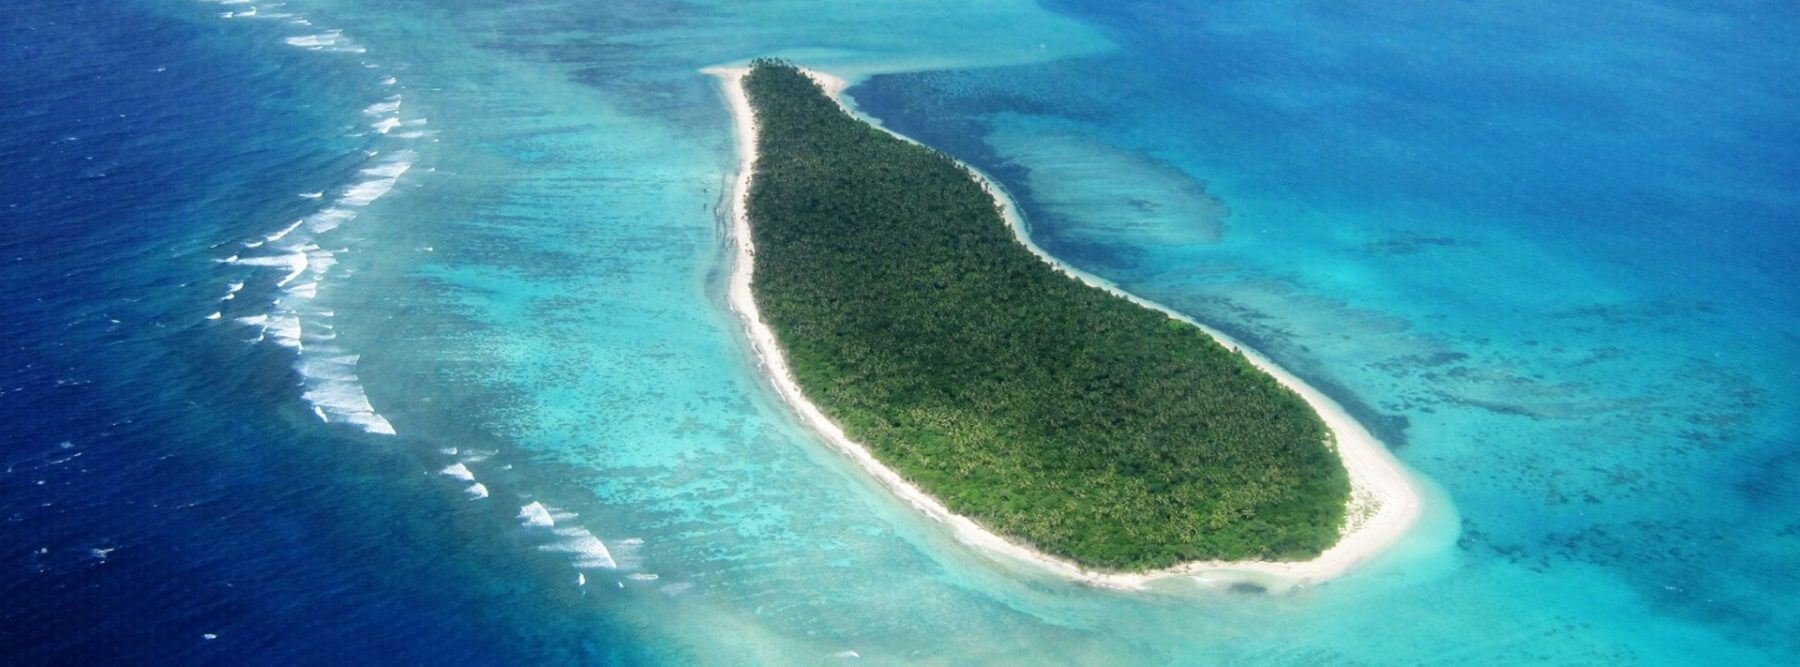 South Pacific Ocean Of Islands Bbc